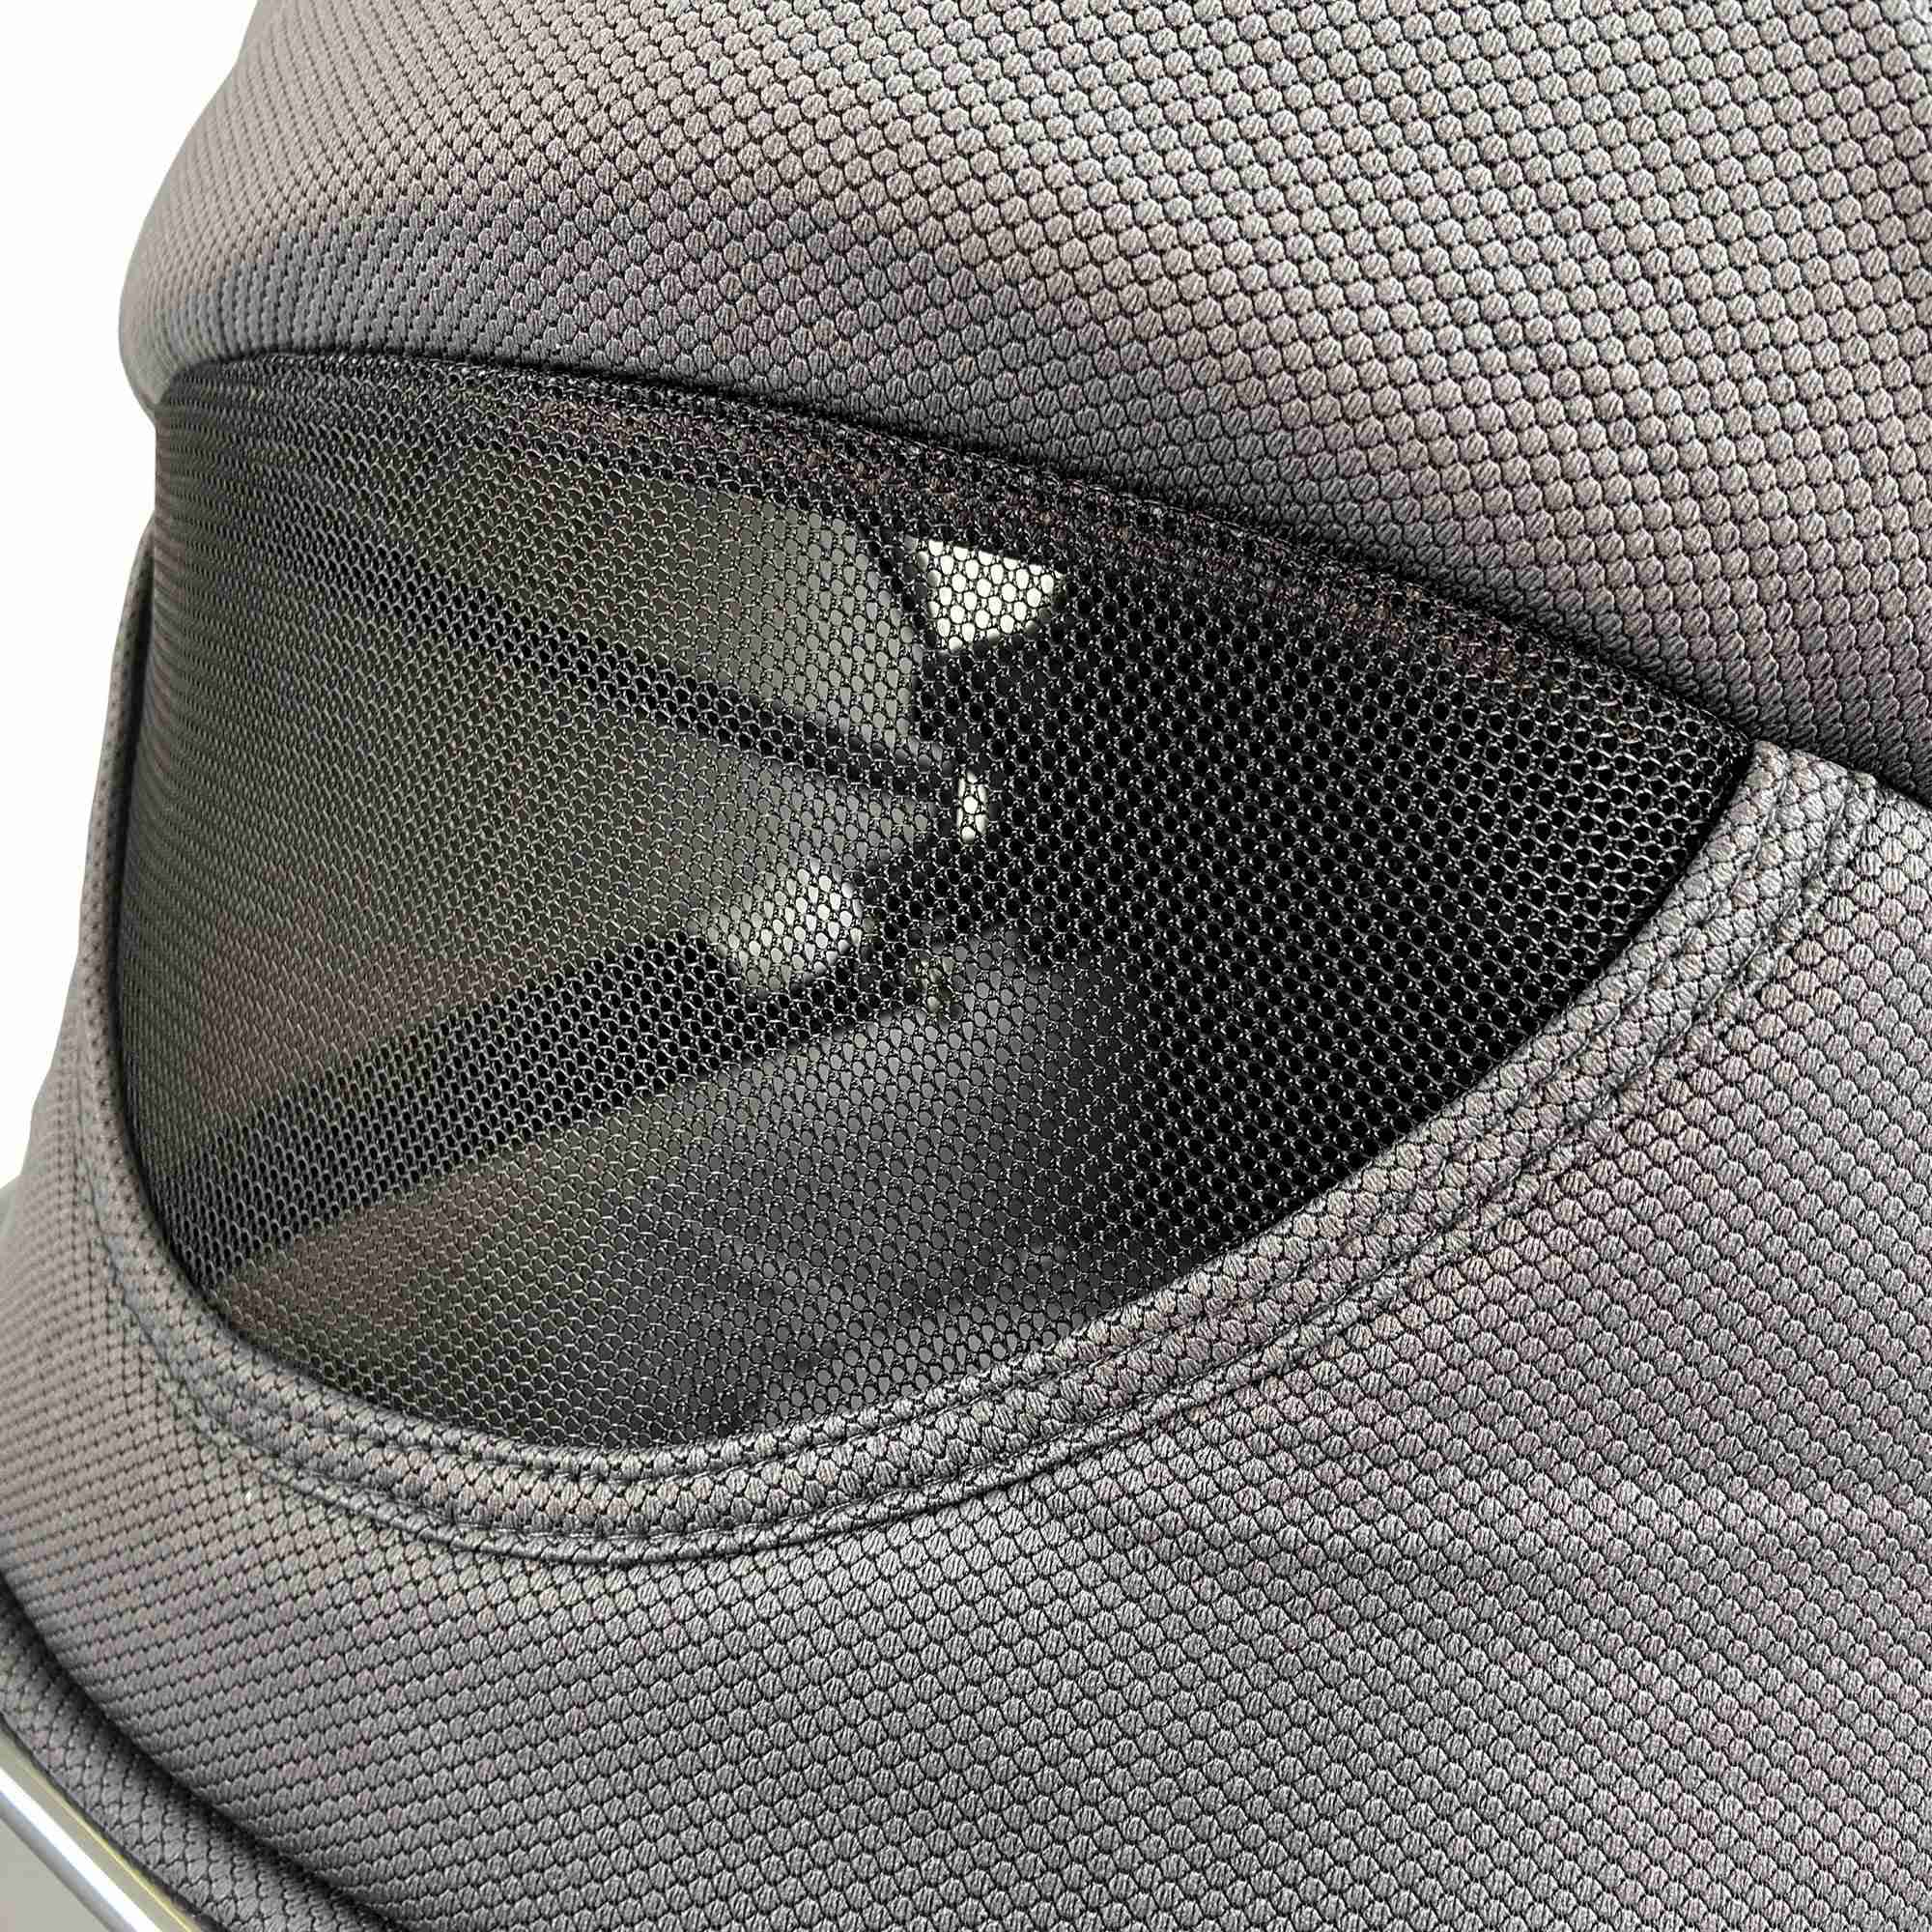 Air vent at the rear of the Venture Nebula Metro Grey Carry Cot